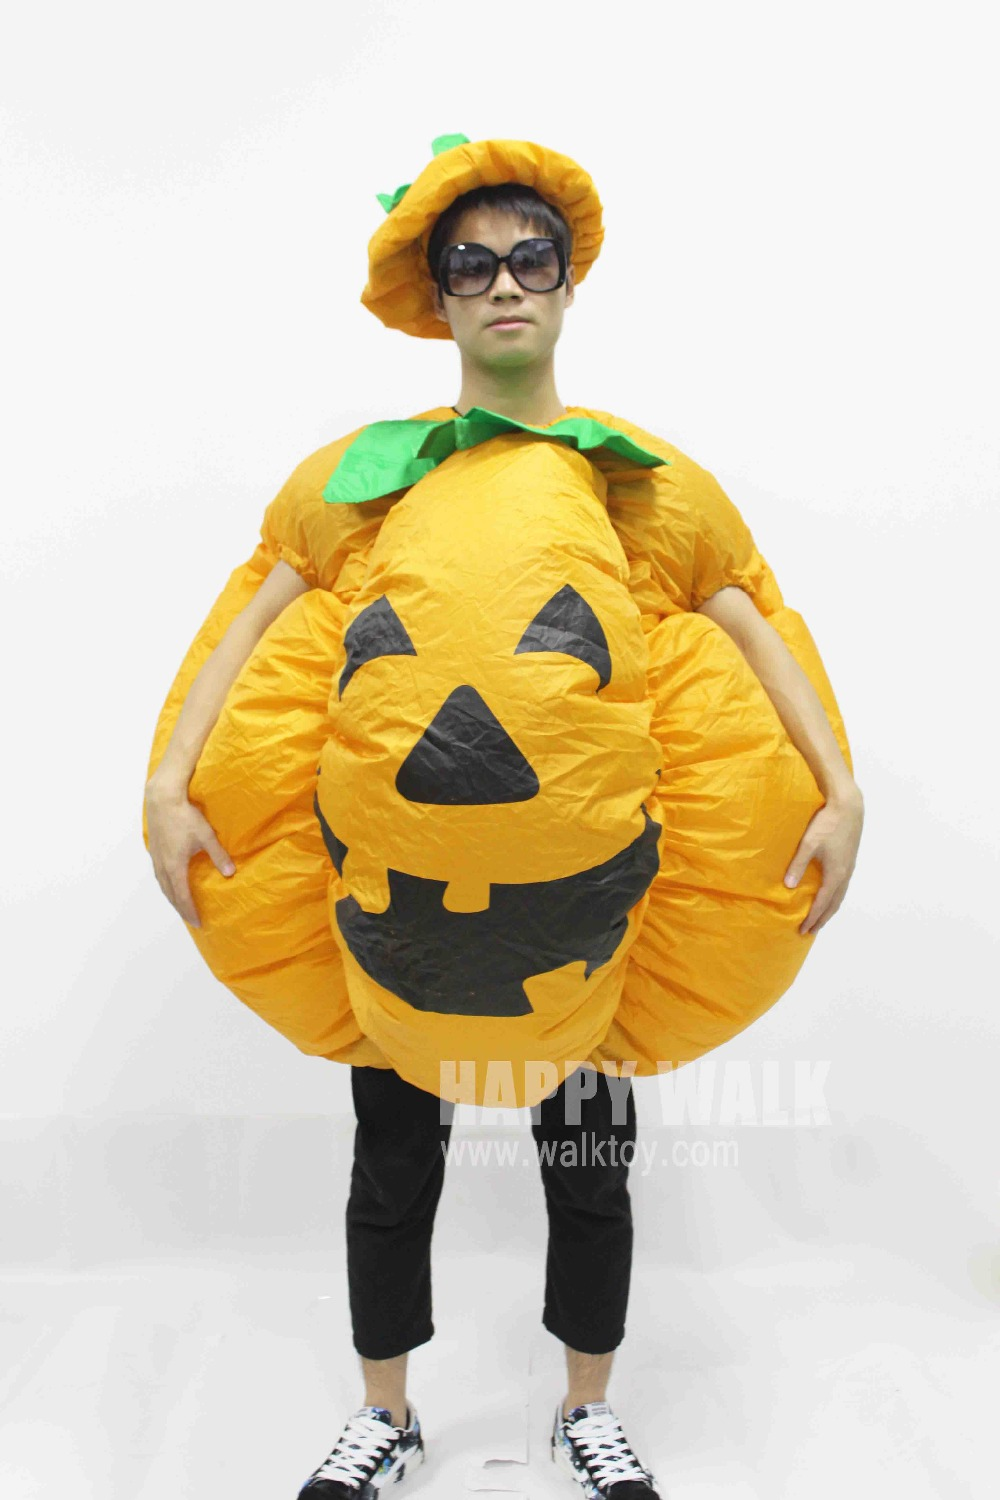 Halloween Pumpkin Cosplay Inflatable Costumes For Adult In Halloween Party Costume To Dress For Man Or Women Halloween Gift